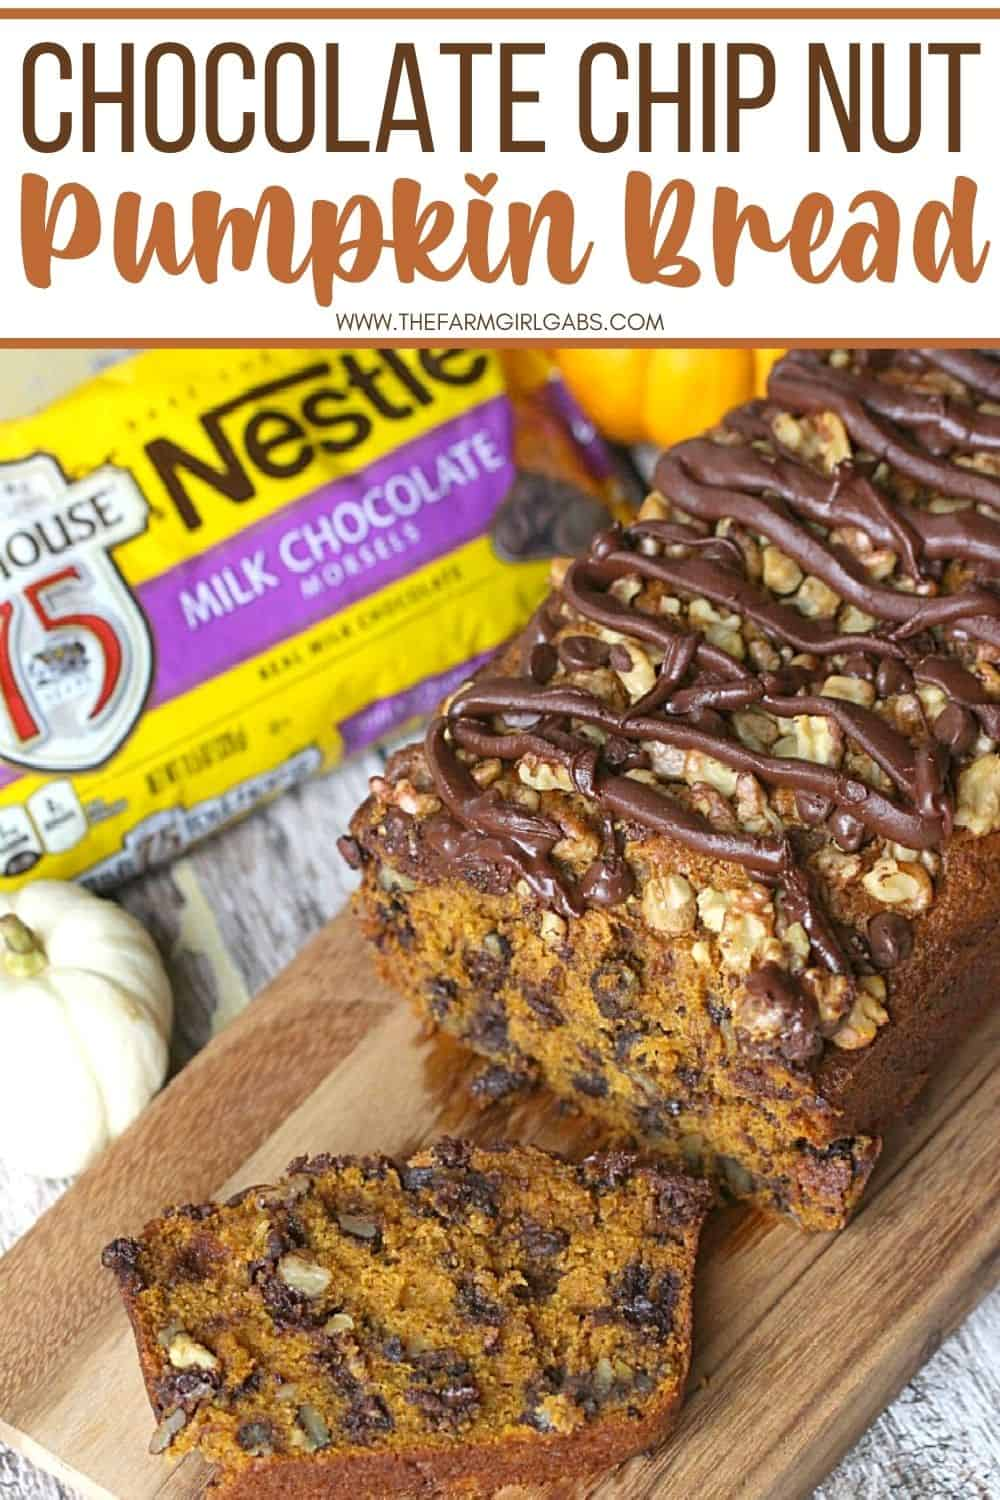 This easy Chocolate Chip Pumpkin Nut Bread recipe is perfect for fall. This quick pumpkin bread is moist, delicious and loaded with chocolate chips and nuts. You family will love how delicious this easy pumpkin quick bread recipe is.